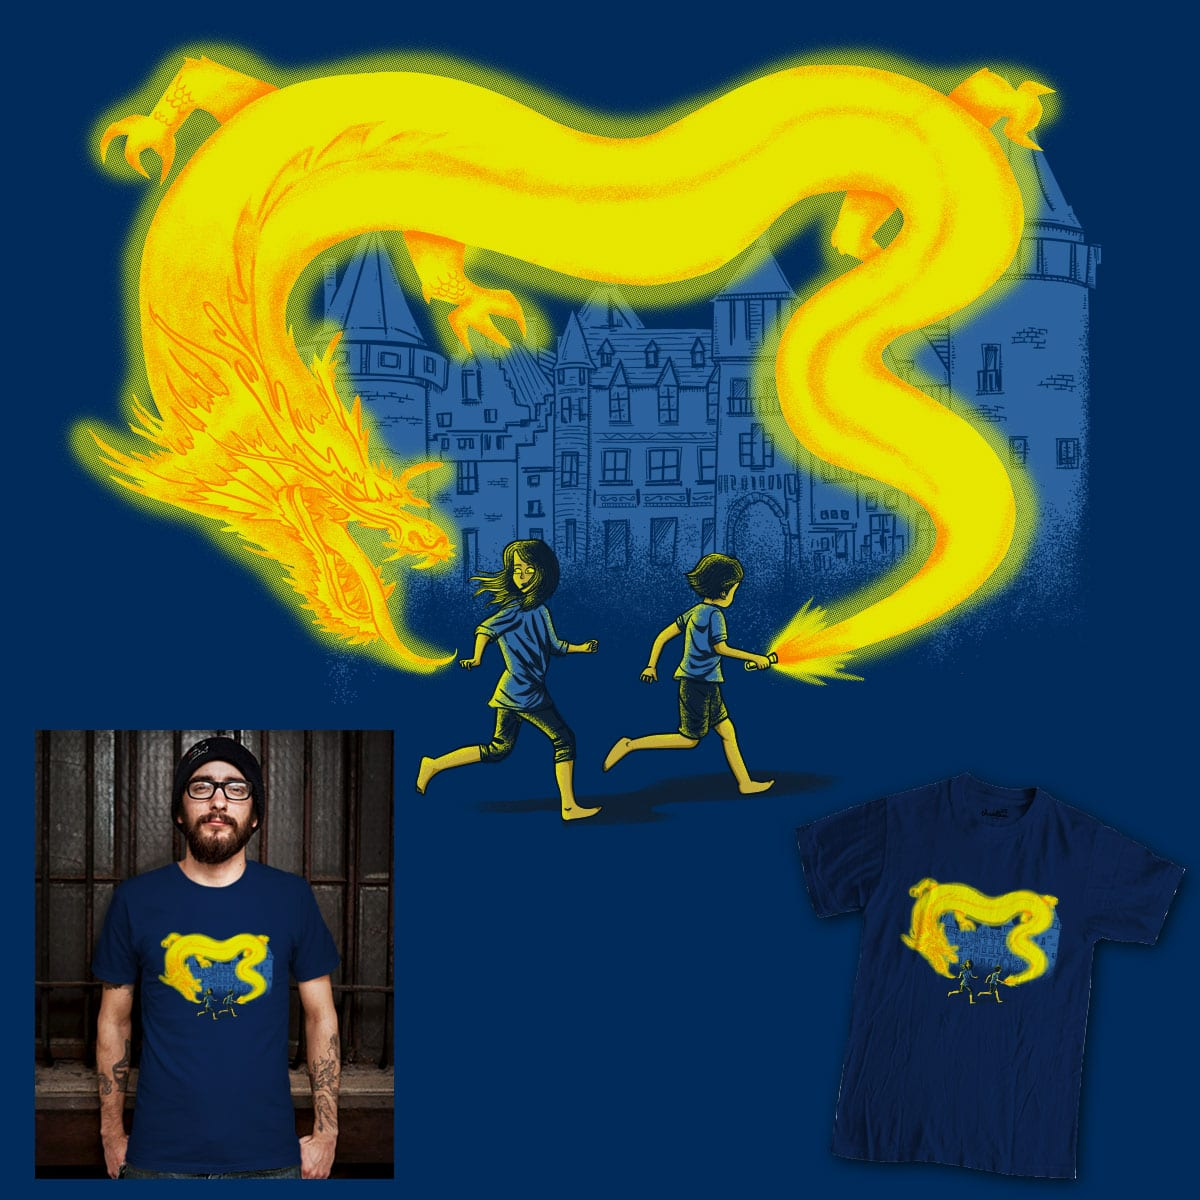 Follow The Lights by eQuivalent and skitchism on Threadless